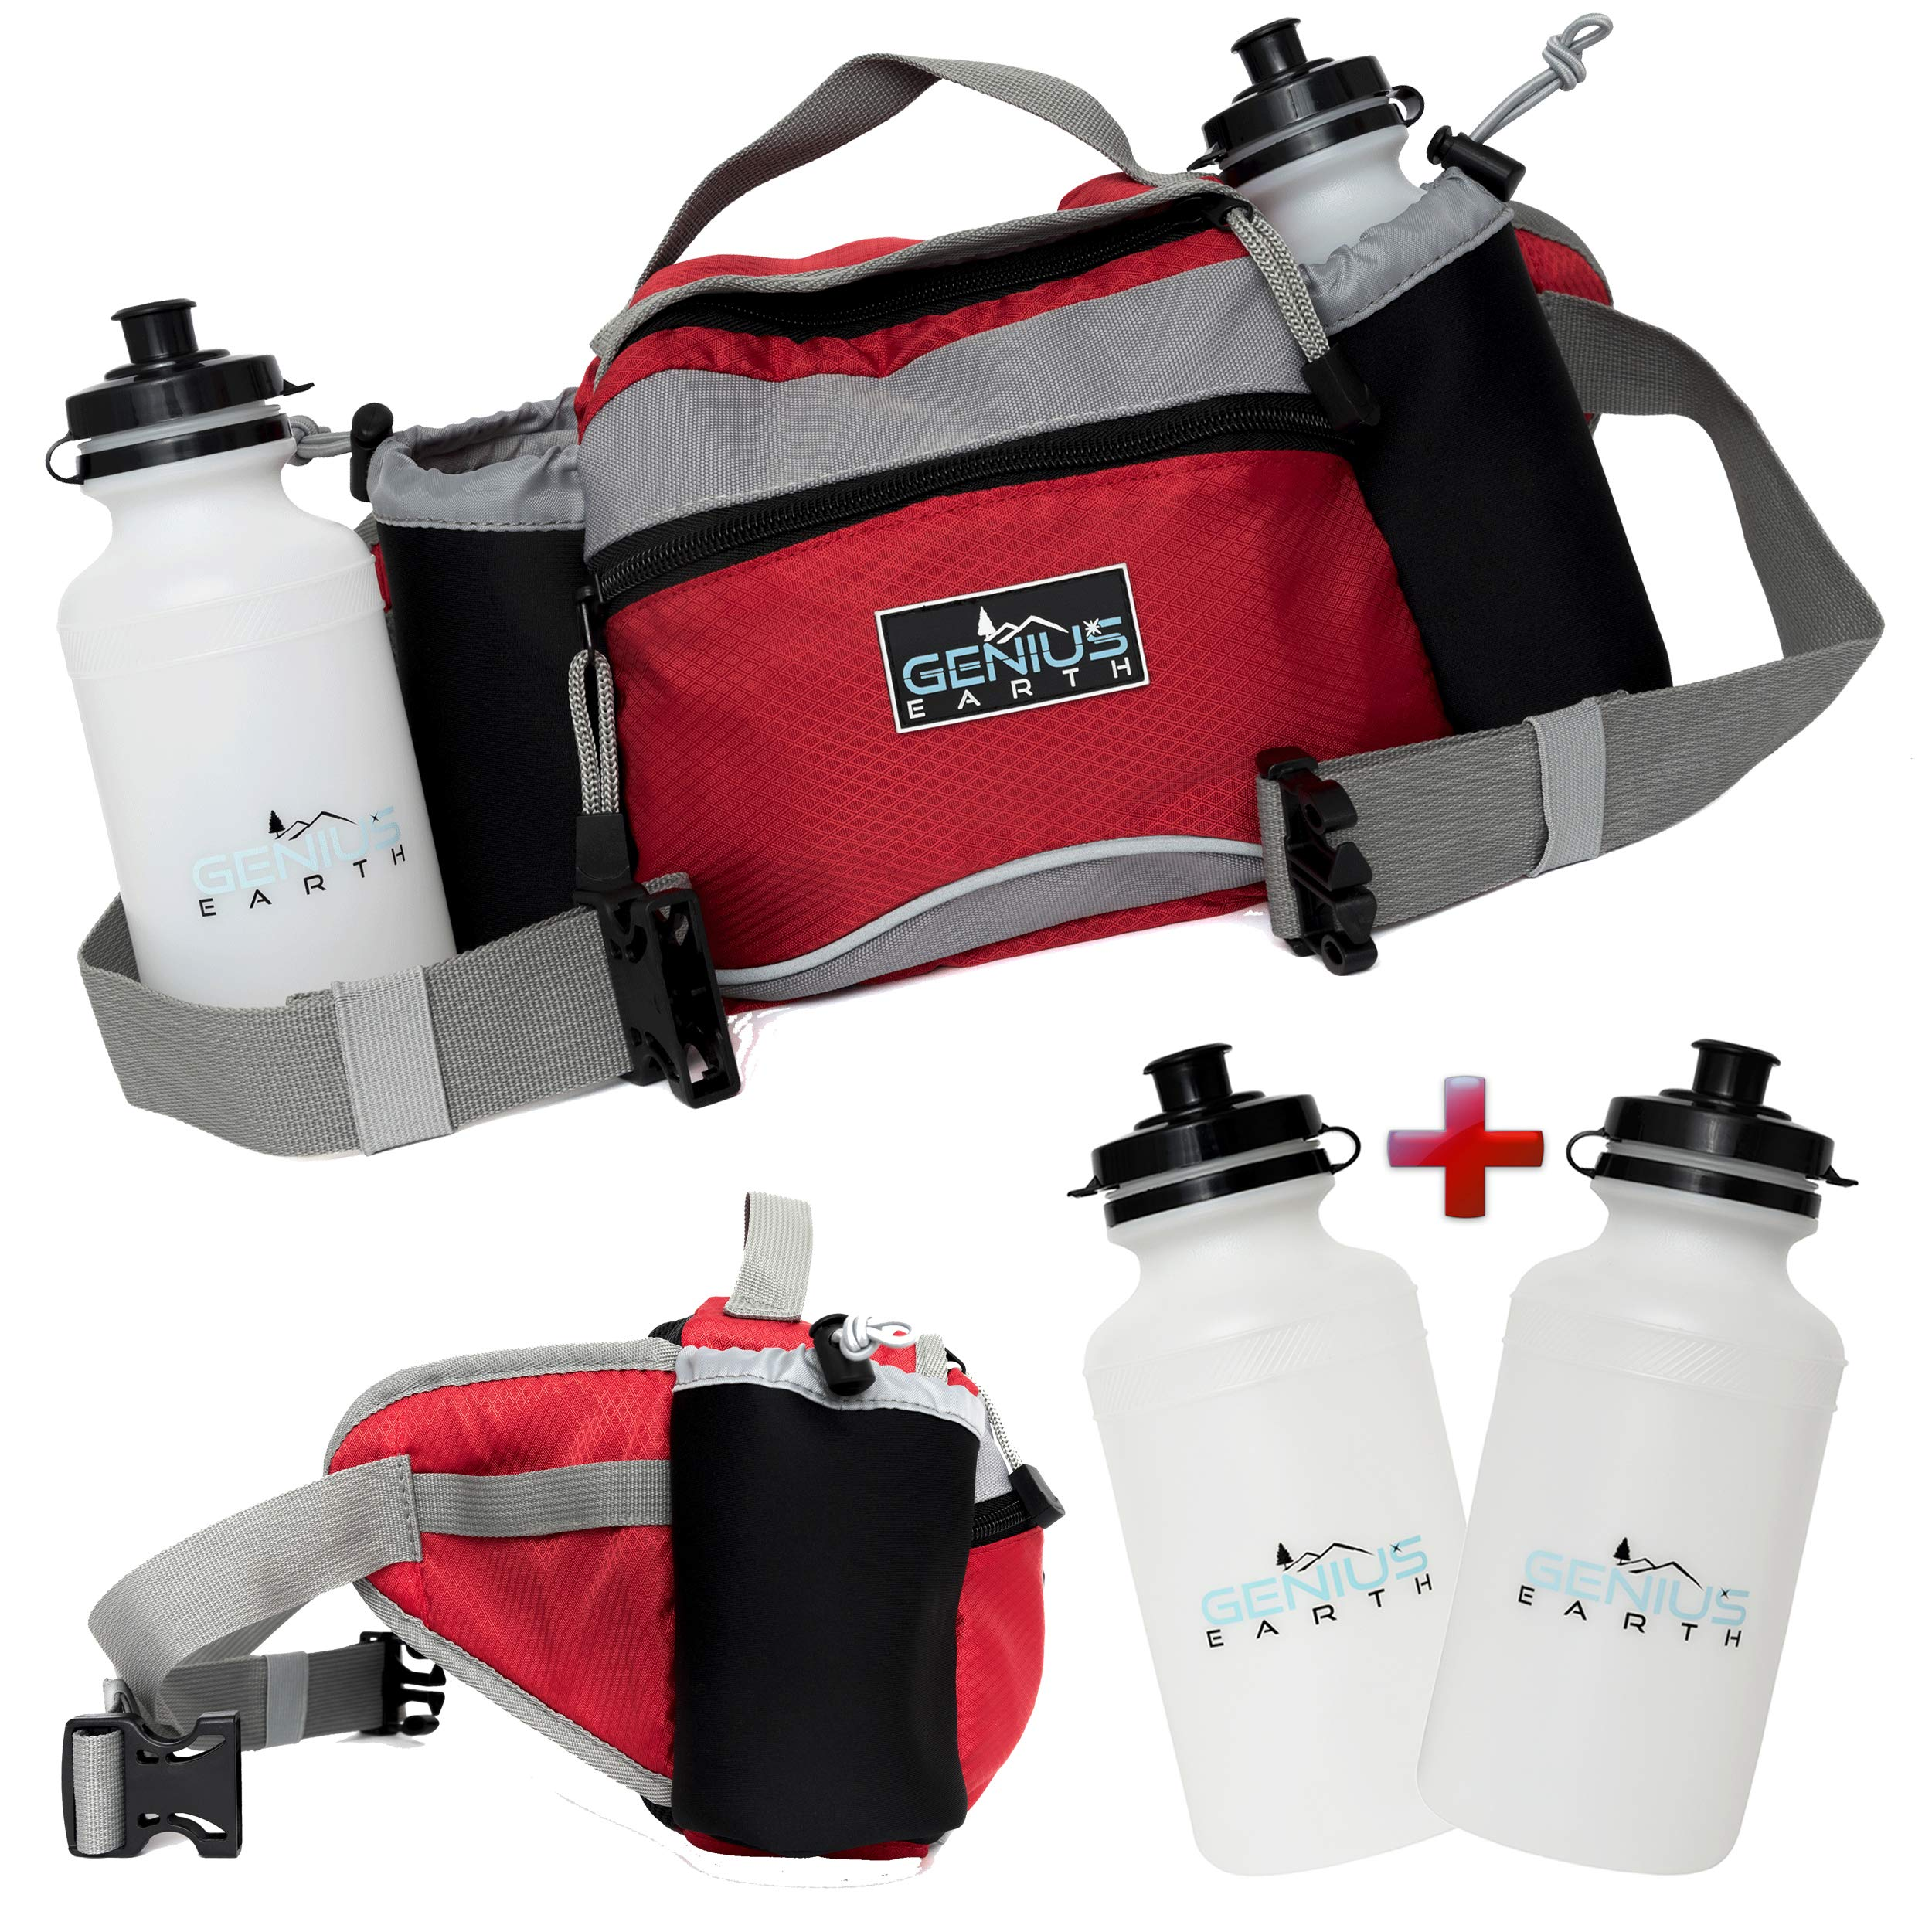 Genius Earth Travel/Hiking Fanny Pack with Water Bottle Holder, Set of 2 Bottles Included. Multipurpose Waterproof Waist Bag and Lumbar Pouch – Fits Women, Men and Kids. Perfect Dog Walking Pack.